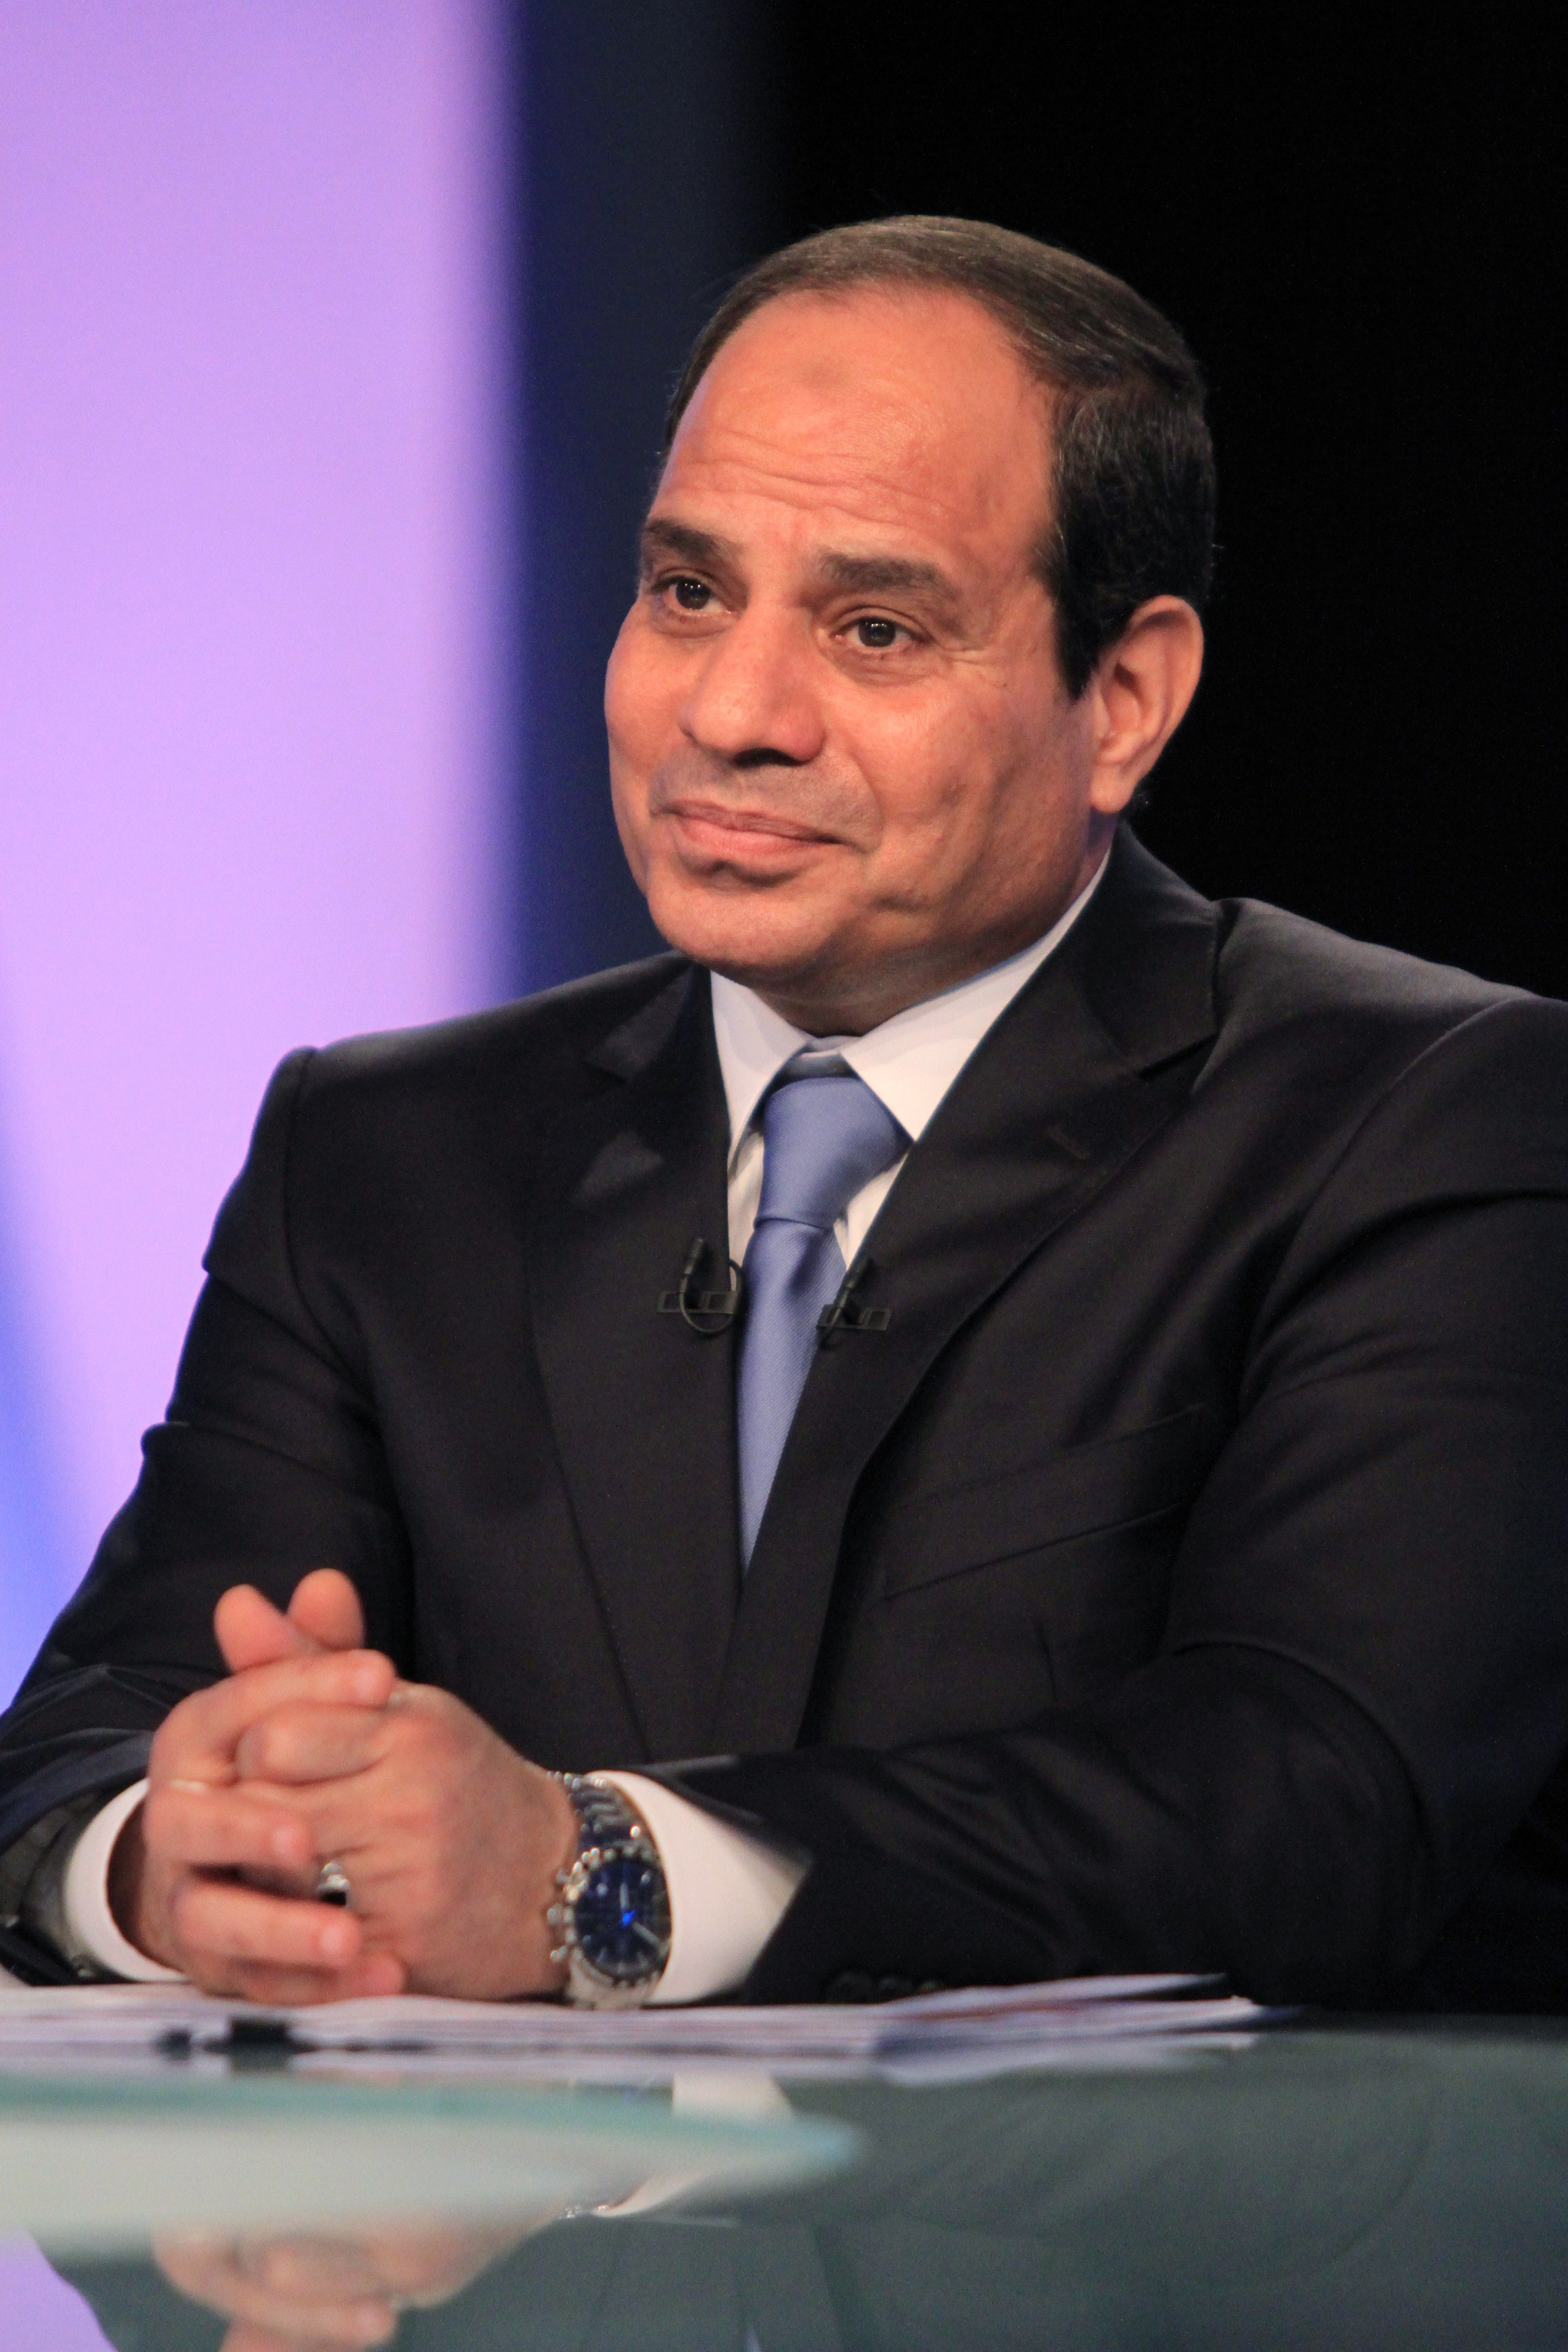 Since his inauguration a month ago, President Abdel Fattah Al-Sisi has adopted several economic measures that have shaped Egypt's economic climate. (AFP Photo)